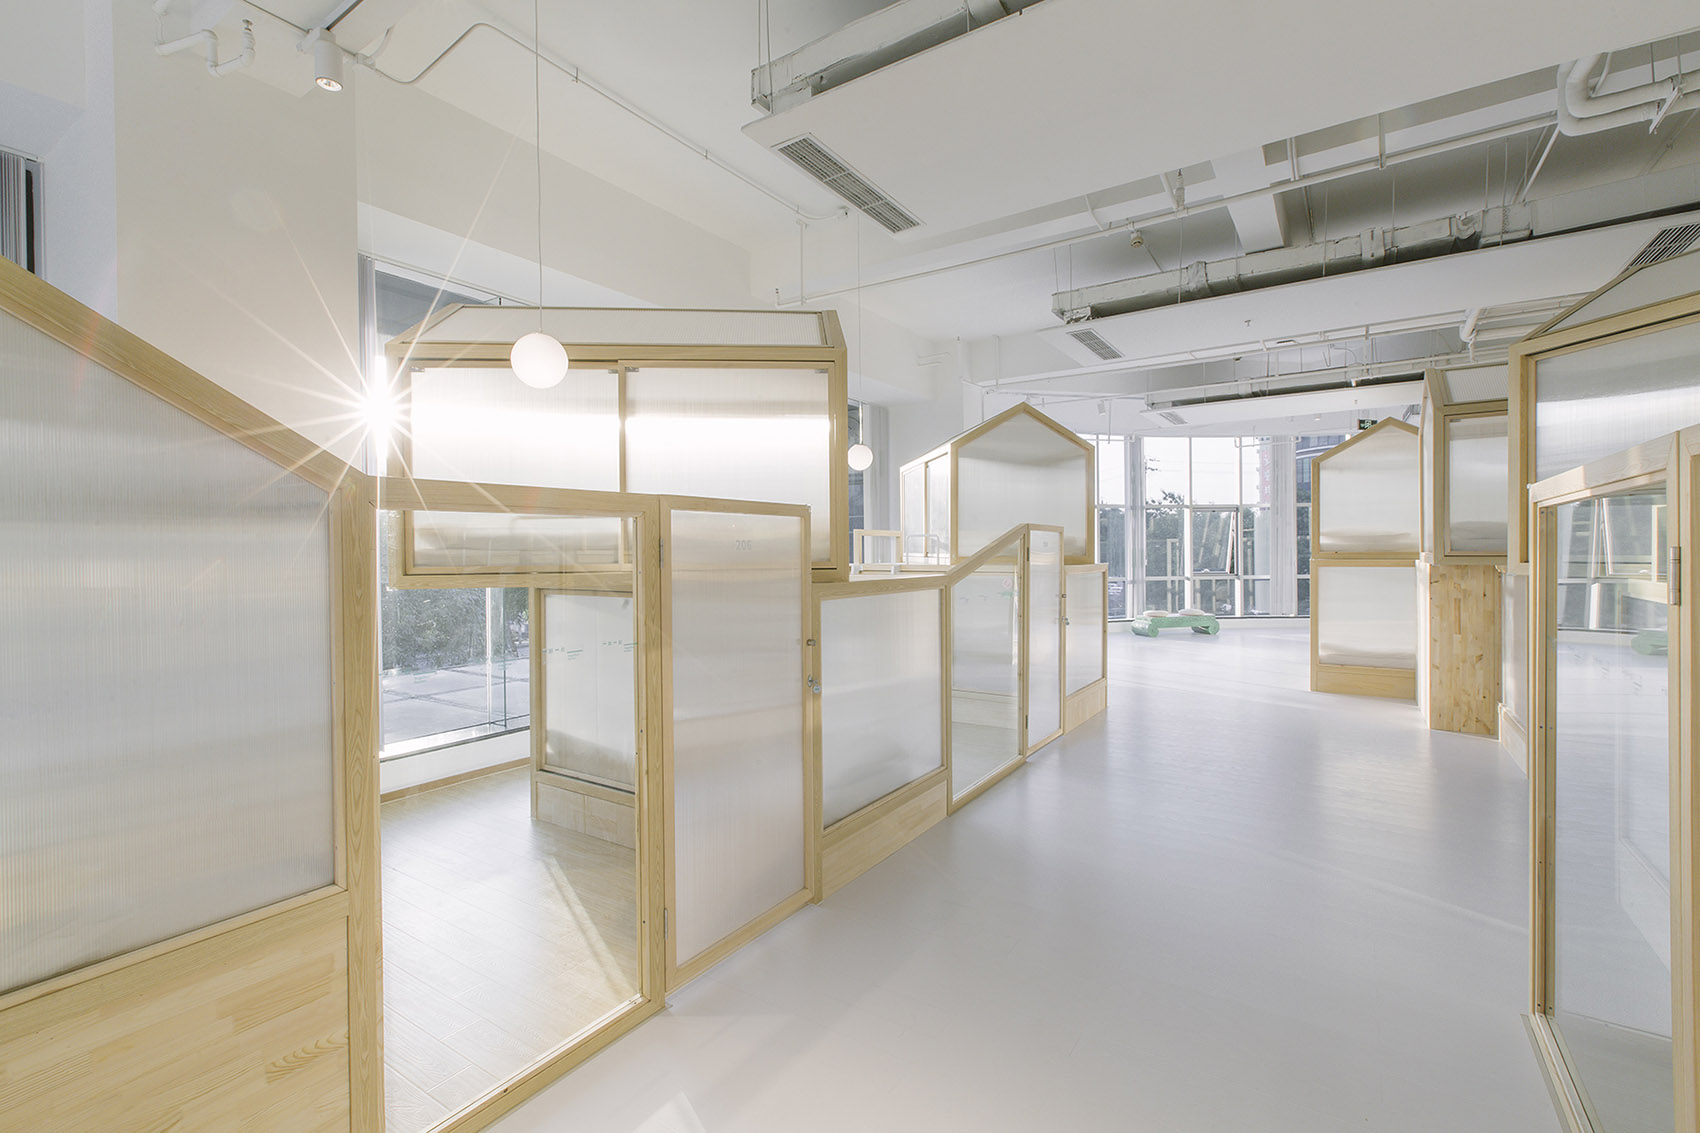 18-Together-Hostel-indoor-camping-space-for-youth-By-Jacobsen-Arquitetura